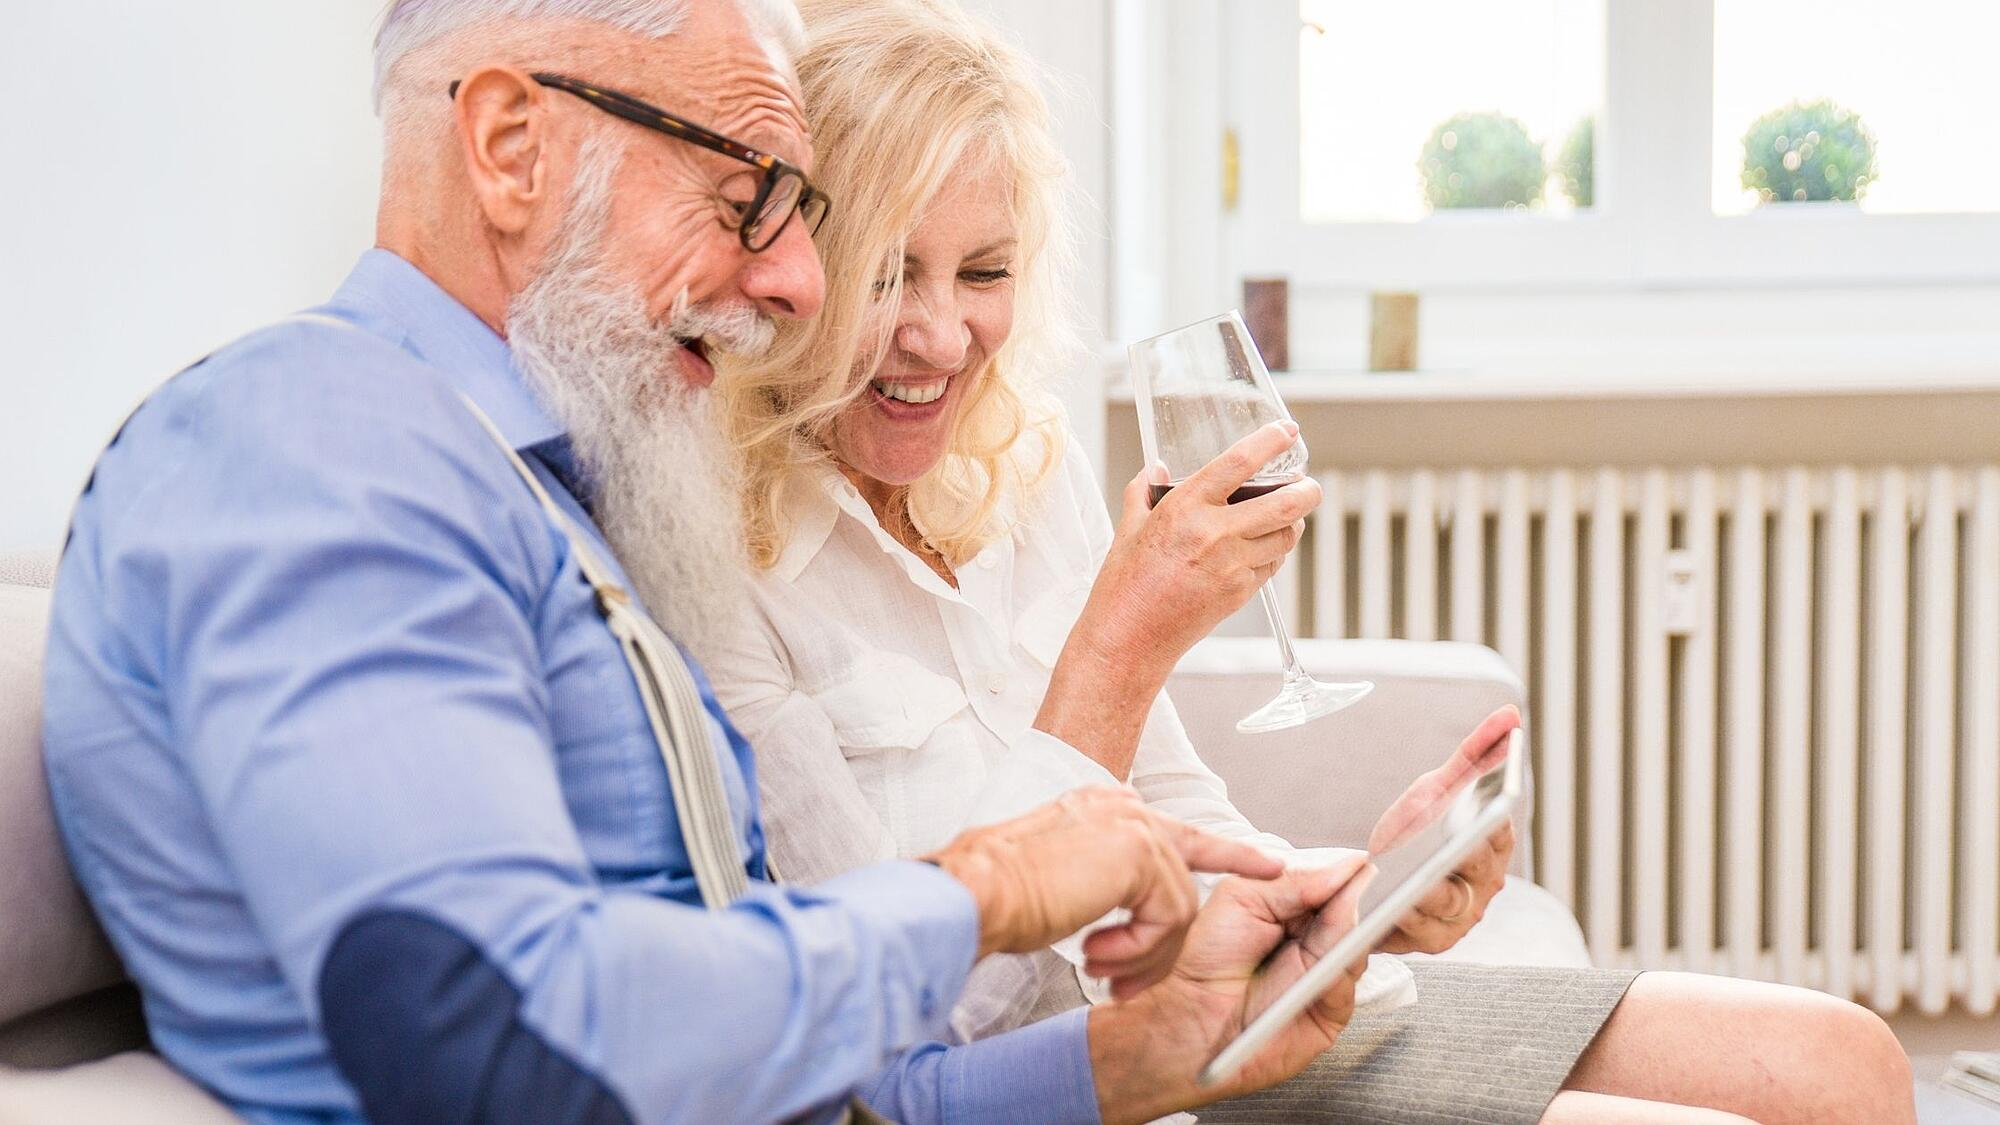 laughing couple looking at screen on computer tablet